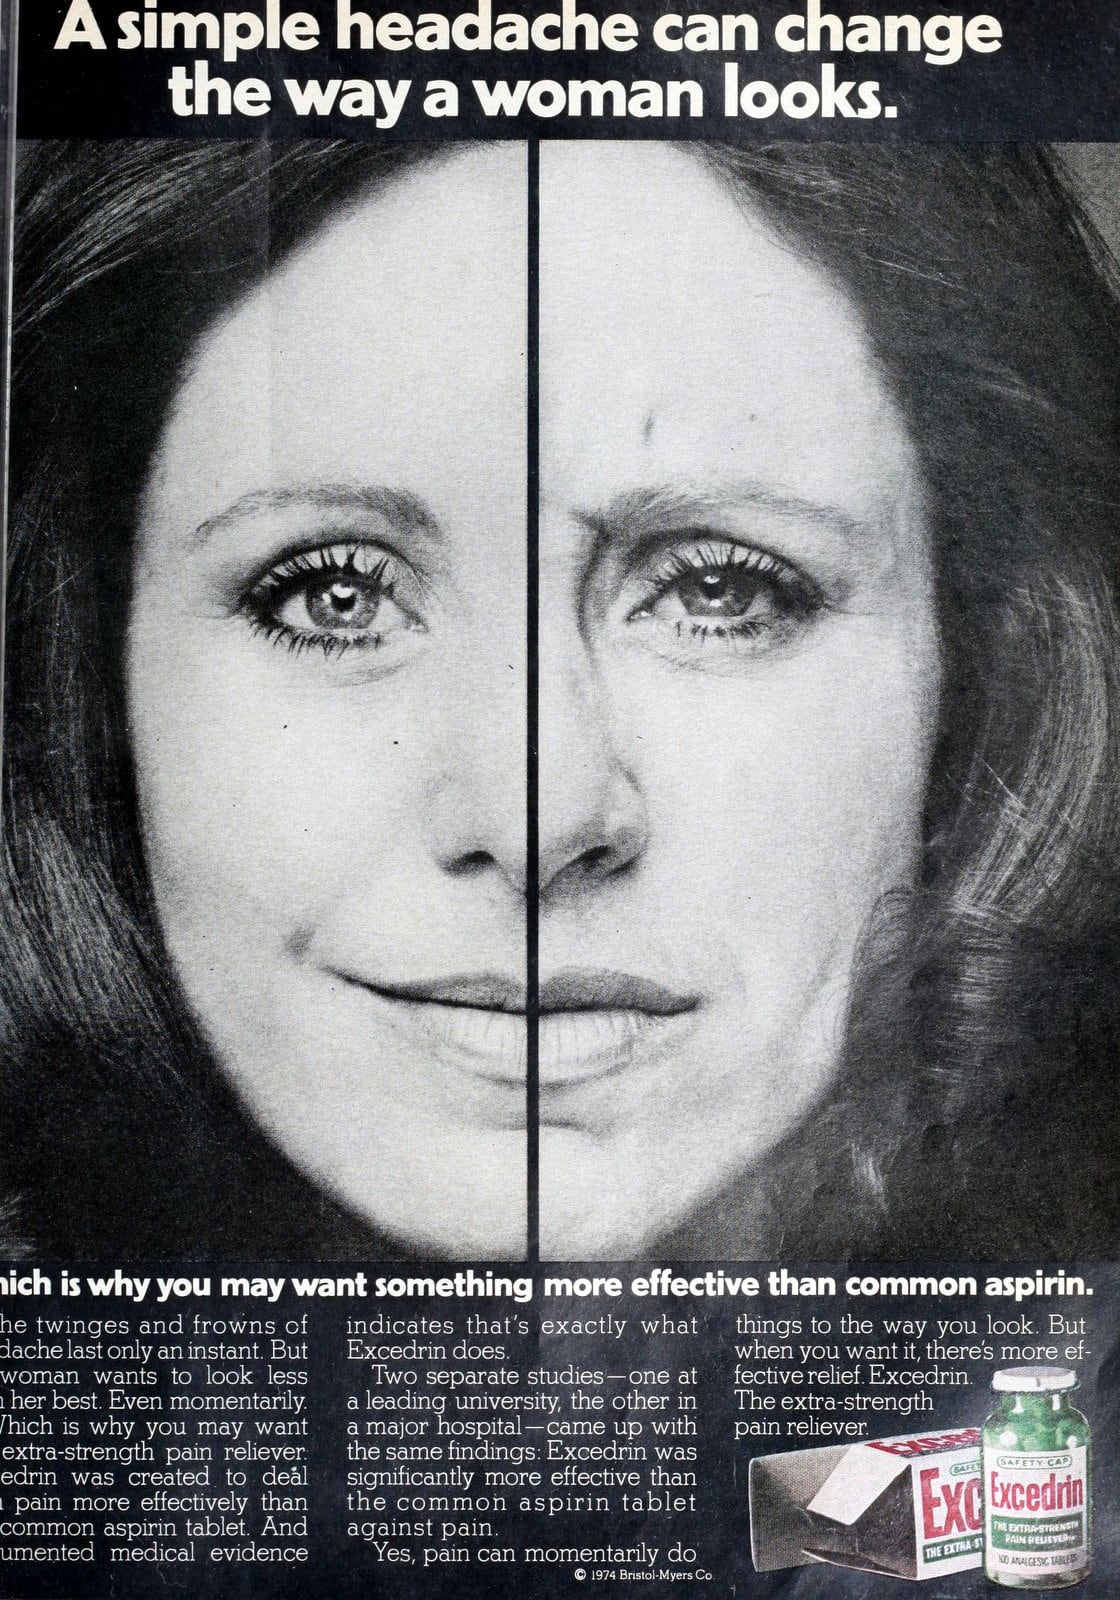 Excedrin headache medicine - Change the way a woman looks (1974)